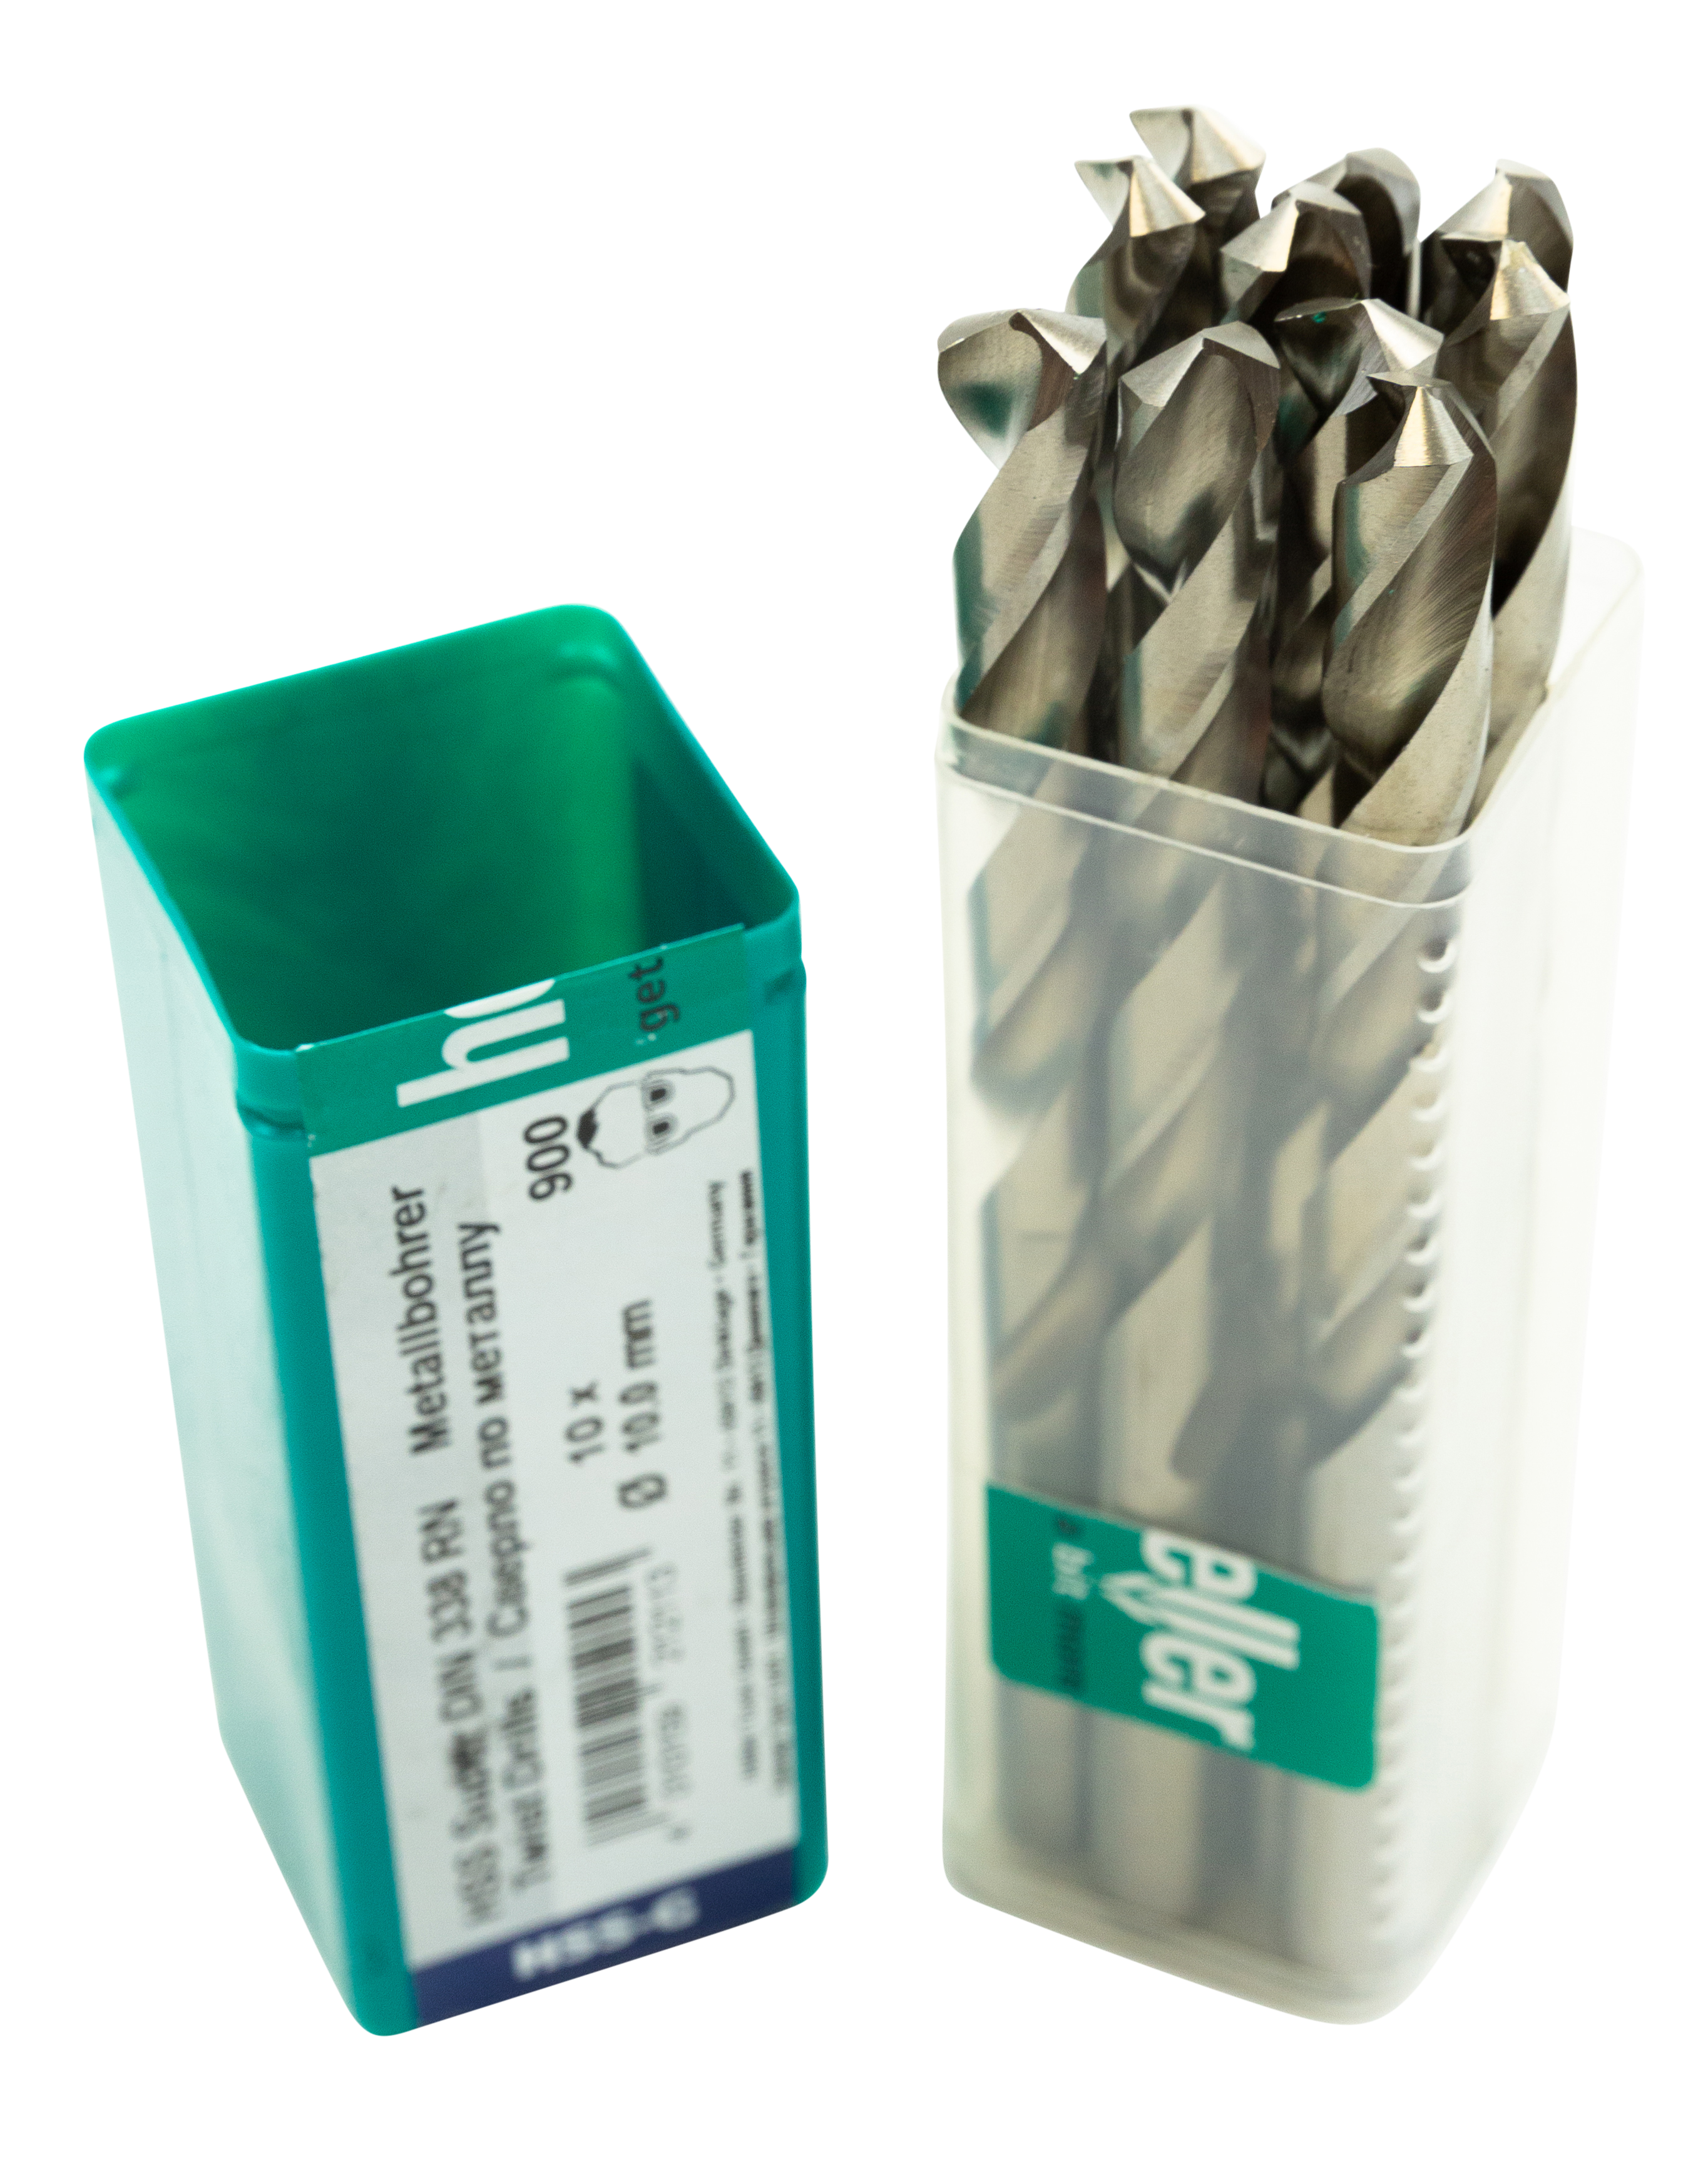 HSS SUPER TWIST METAL DRILL BIT